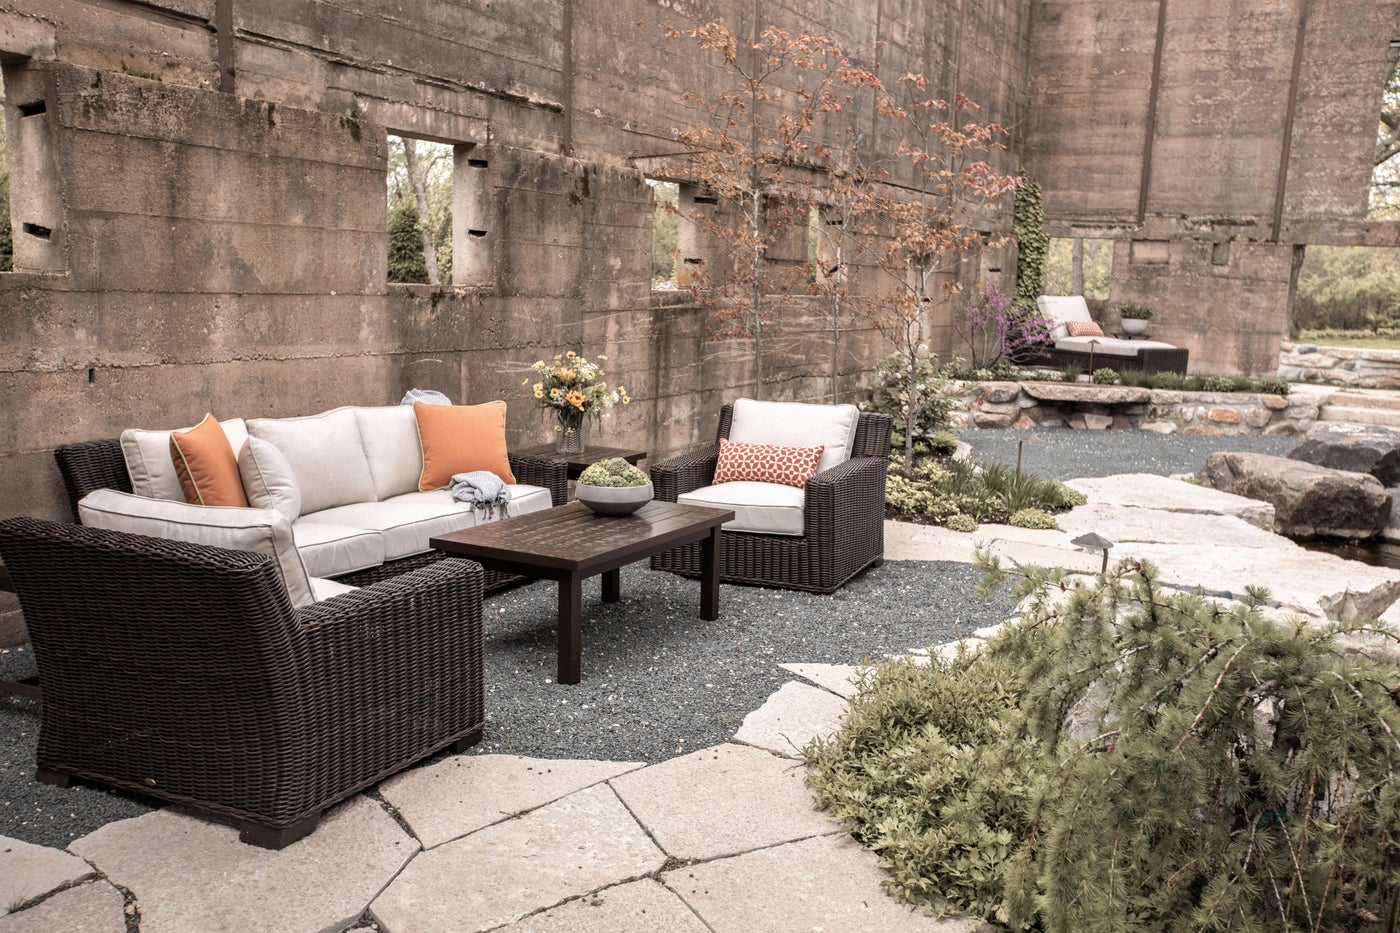 Outdoor woven furniture, orange pillows, linen color cushions, woven arm chairs